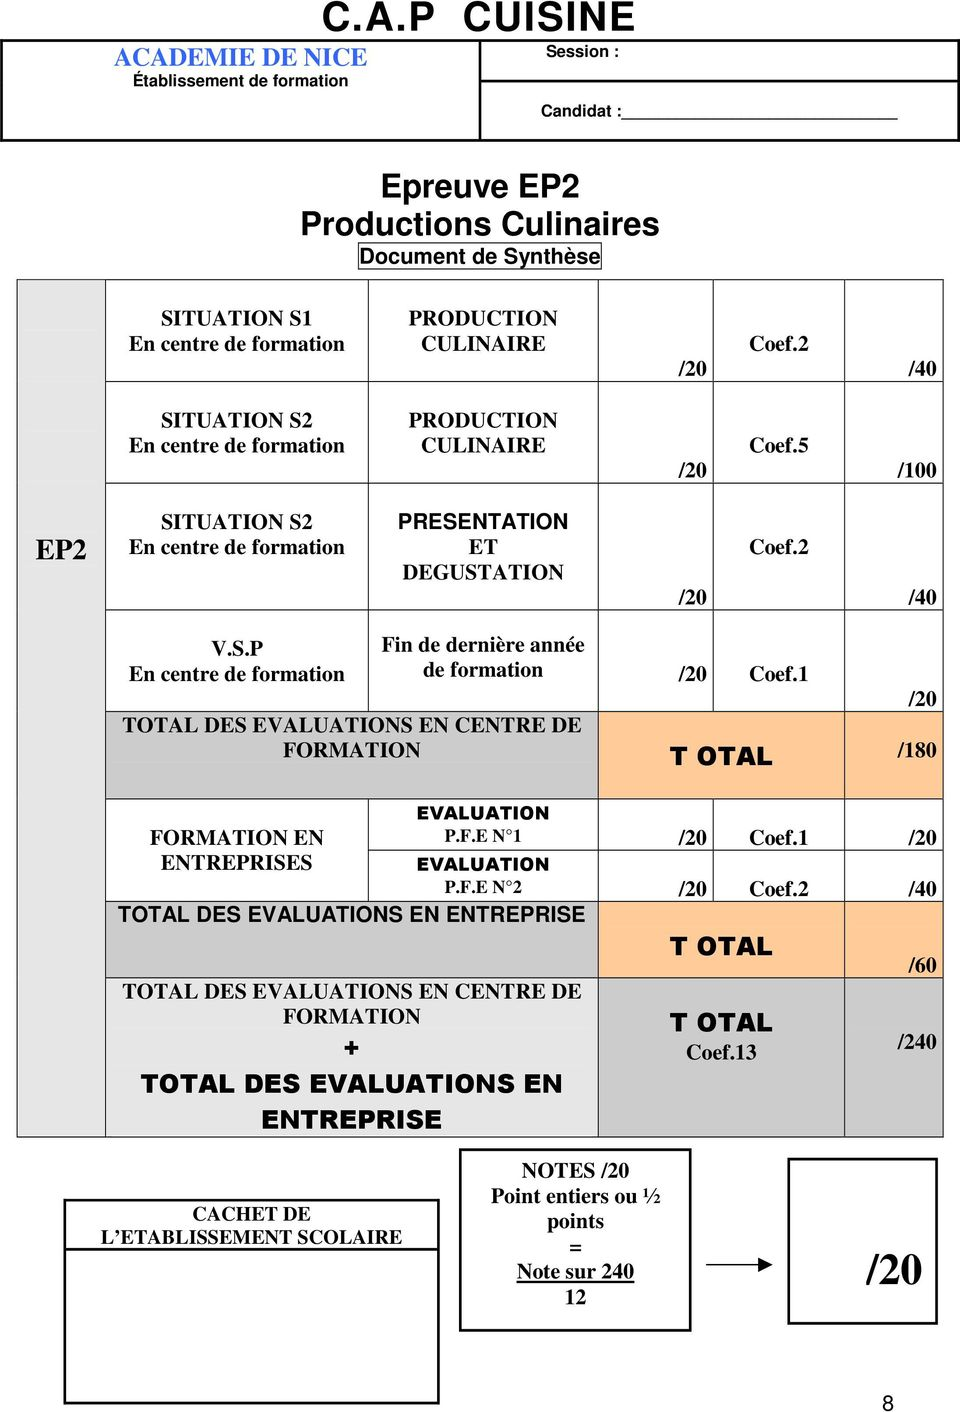 1 TOTAL DES EVALUATIONS EN CENTRE DE FORMATION T OTAL /180 /20 FORMATION EN ENTREPRISES EVALUATION P.F.E N 1 /20 Coef.1 /20 EVALUATION P.F.E N 2 /20 Coef.